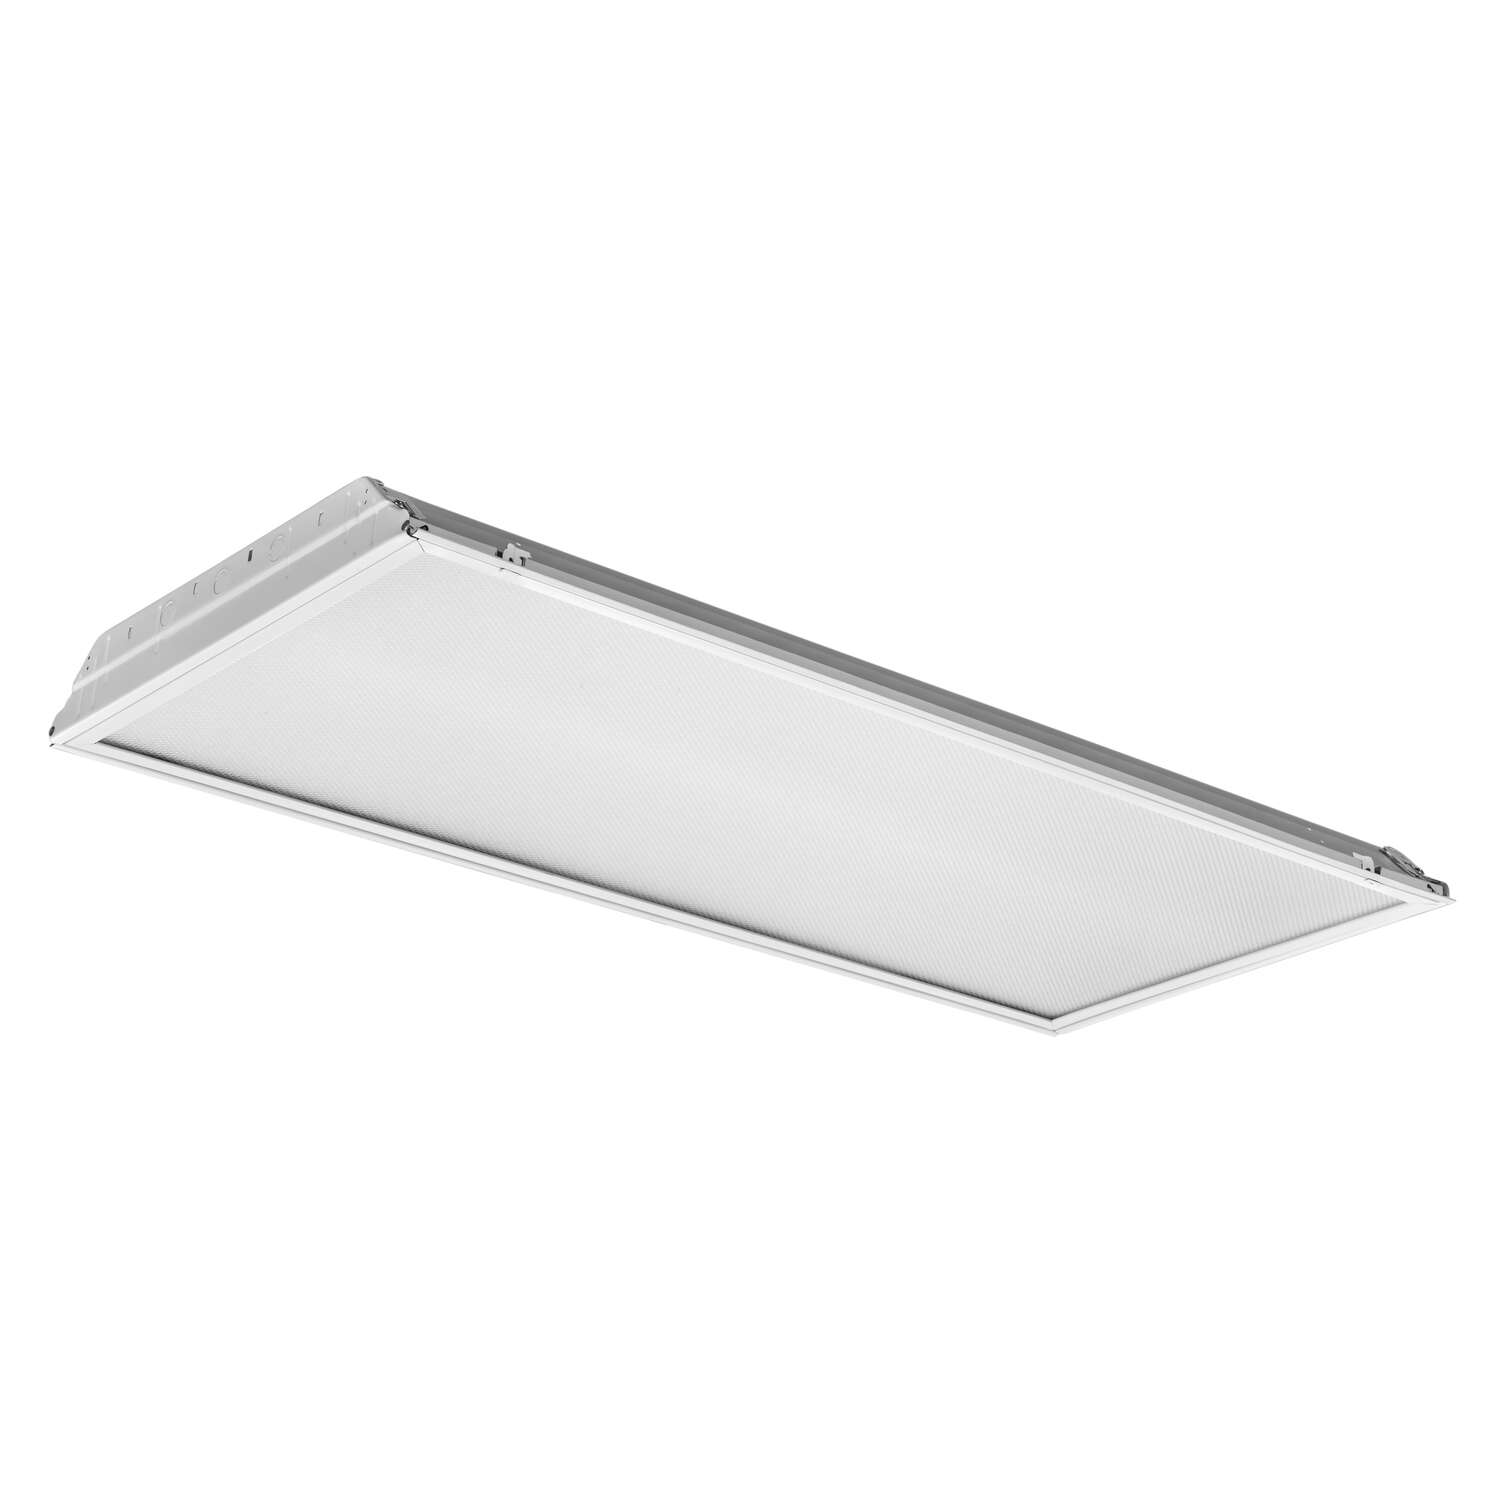 Lithonia Lighting  41 watts LED Troffer Fixture  3-1/4 in. 24 in. 48 in.